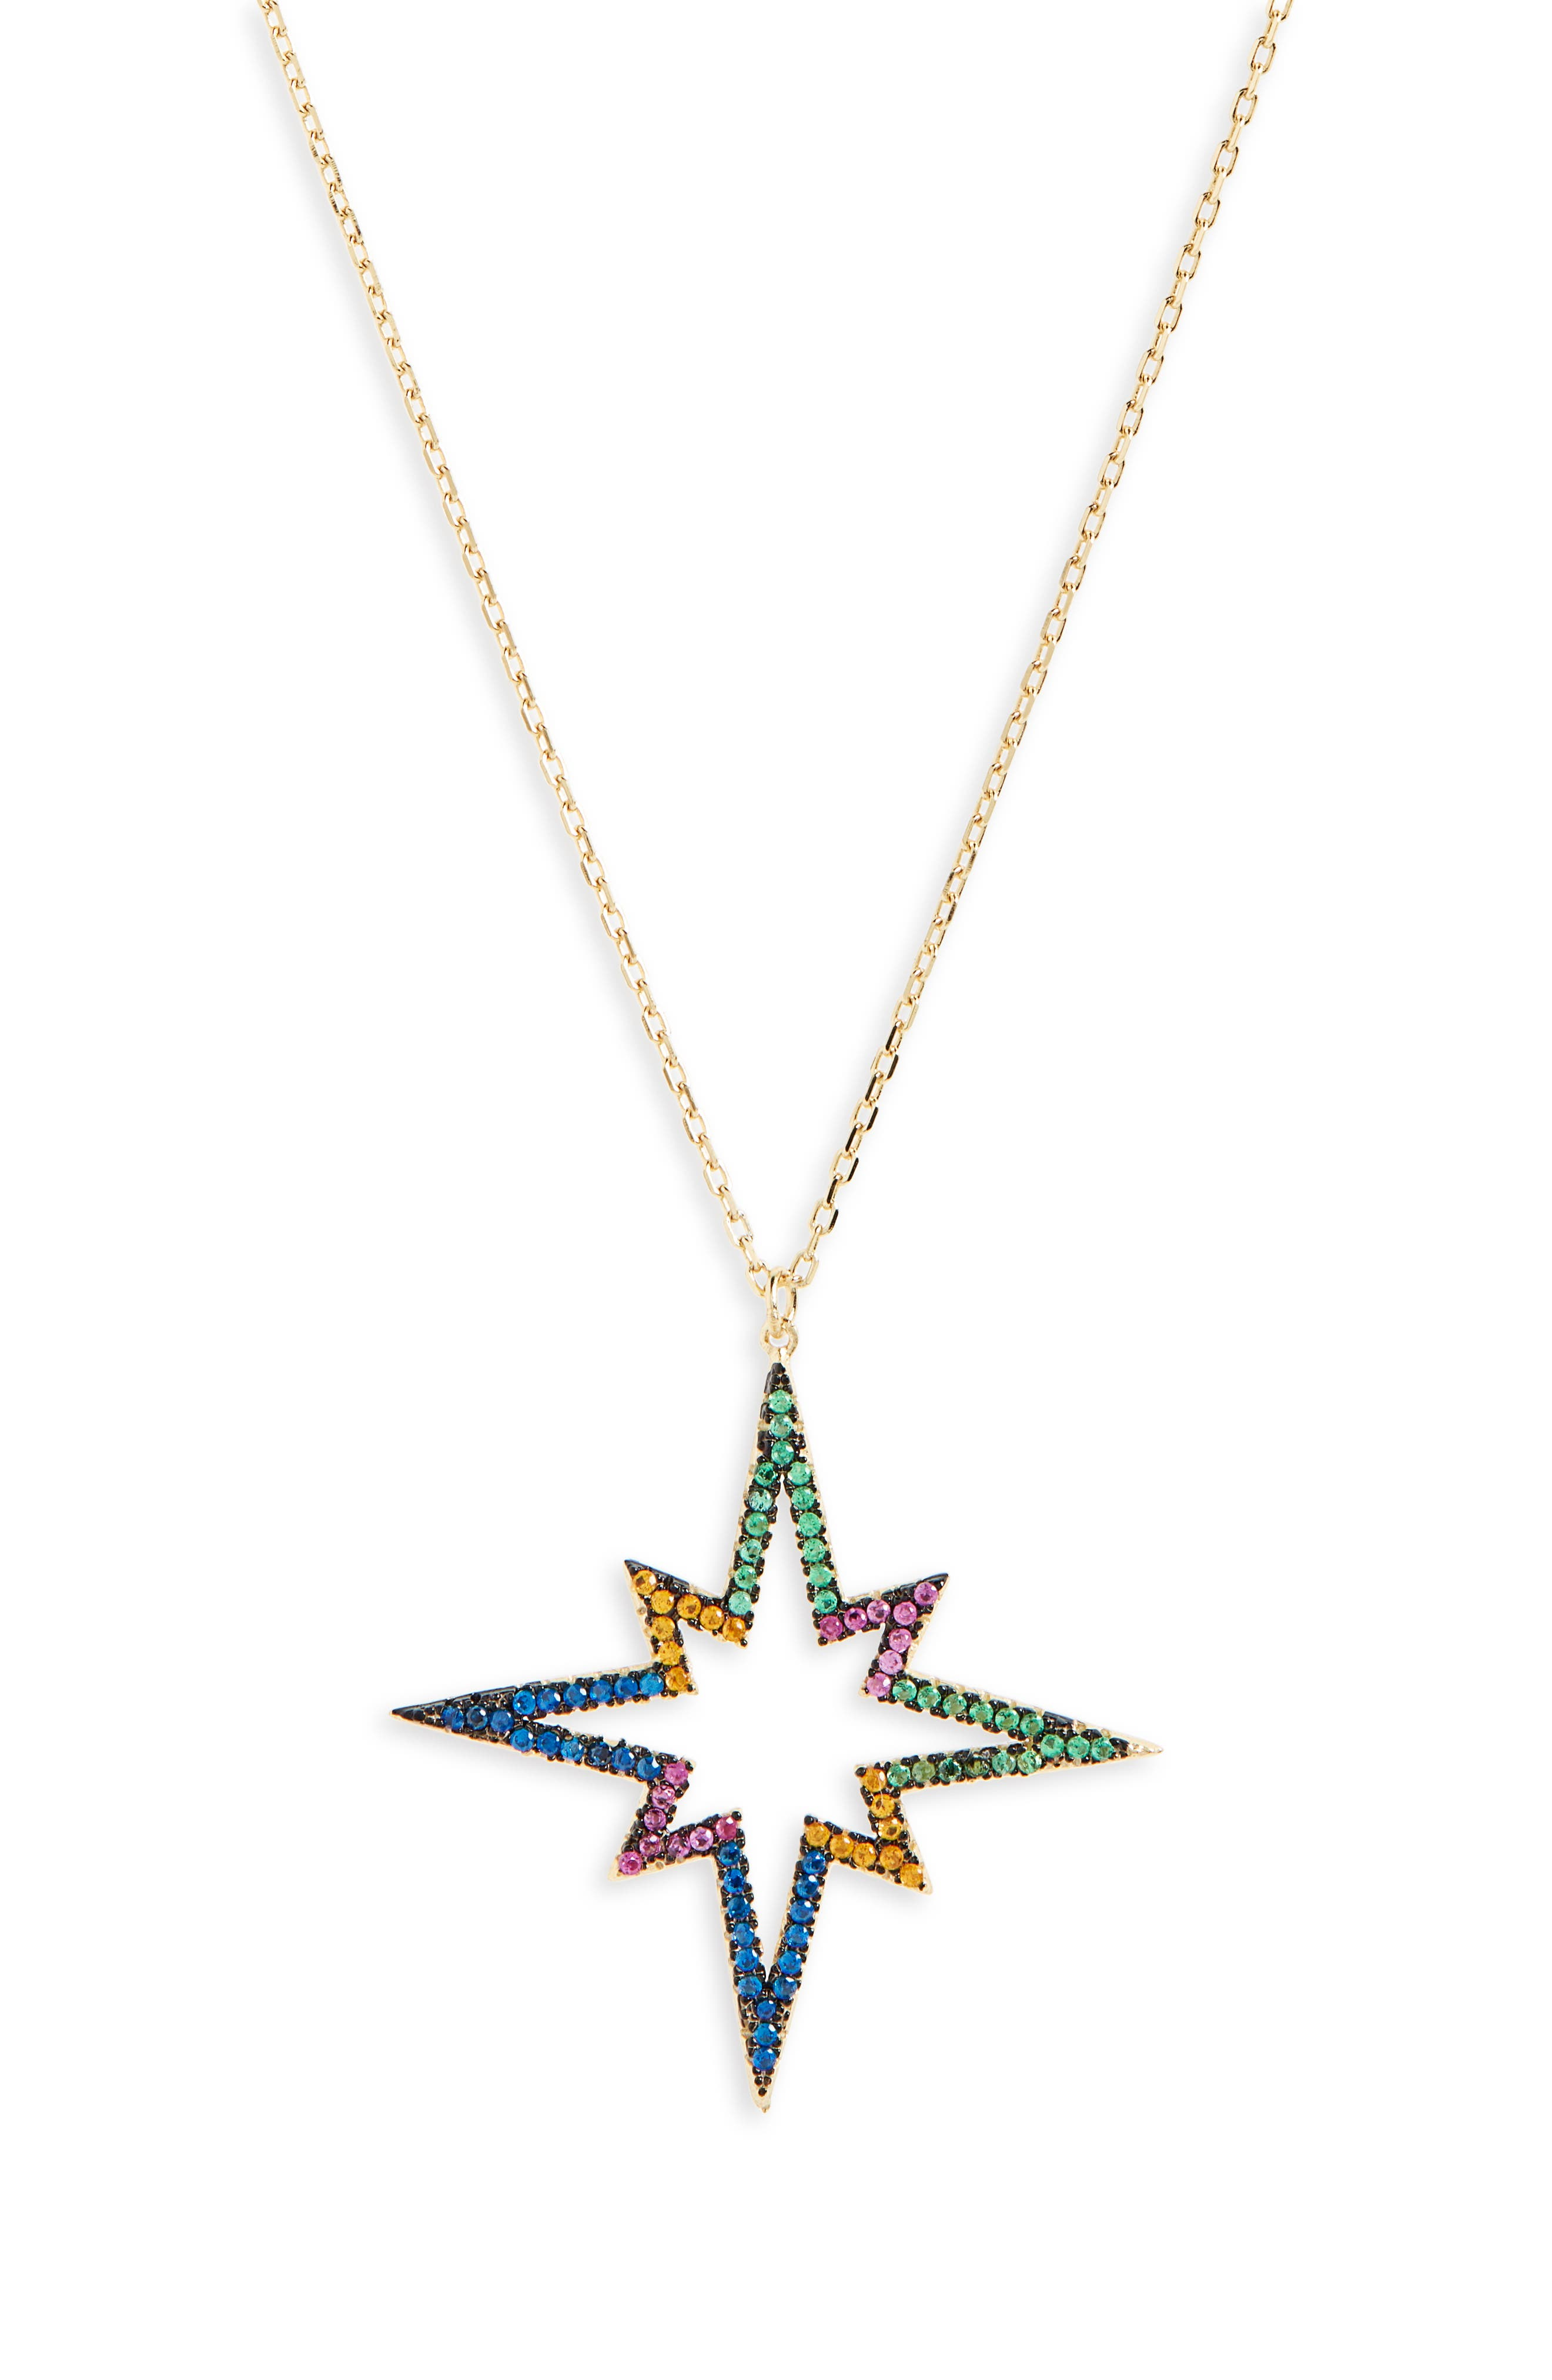 Rainbow Star Pendant Necklace,                             Main thumbnail 1, color,                             GOLD MULTI